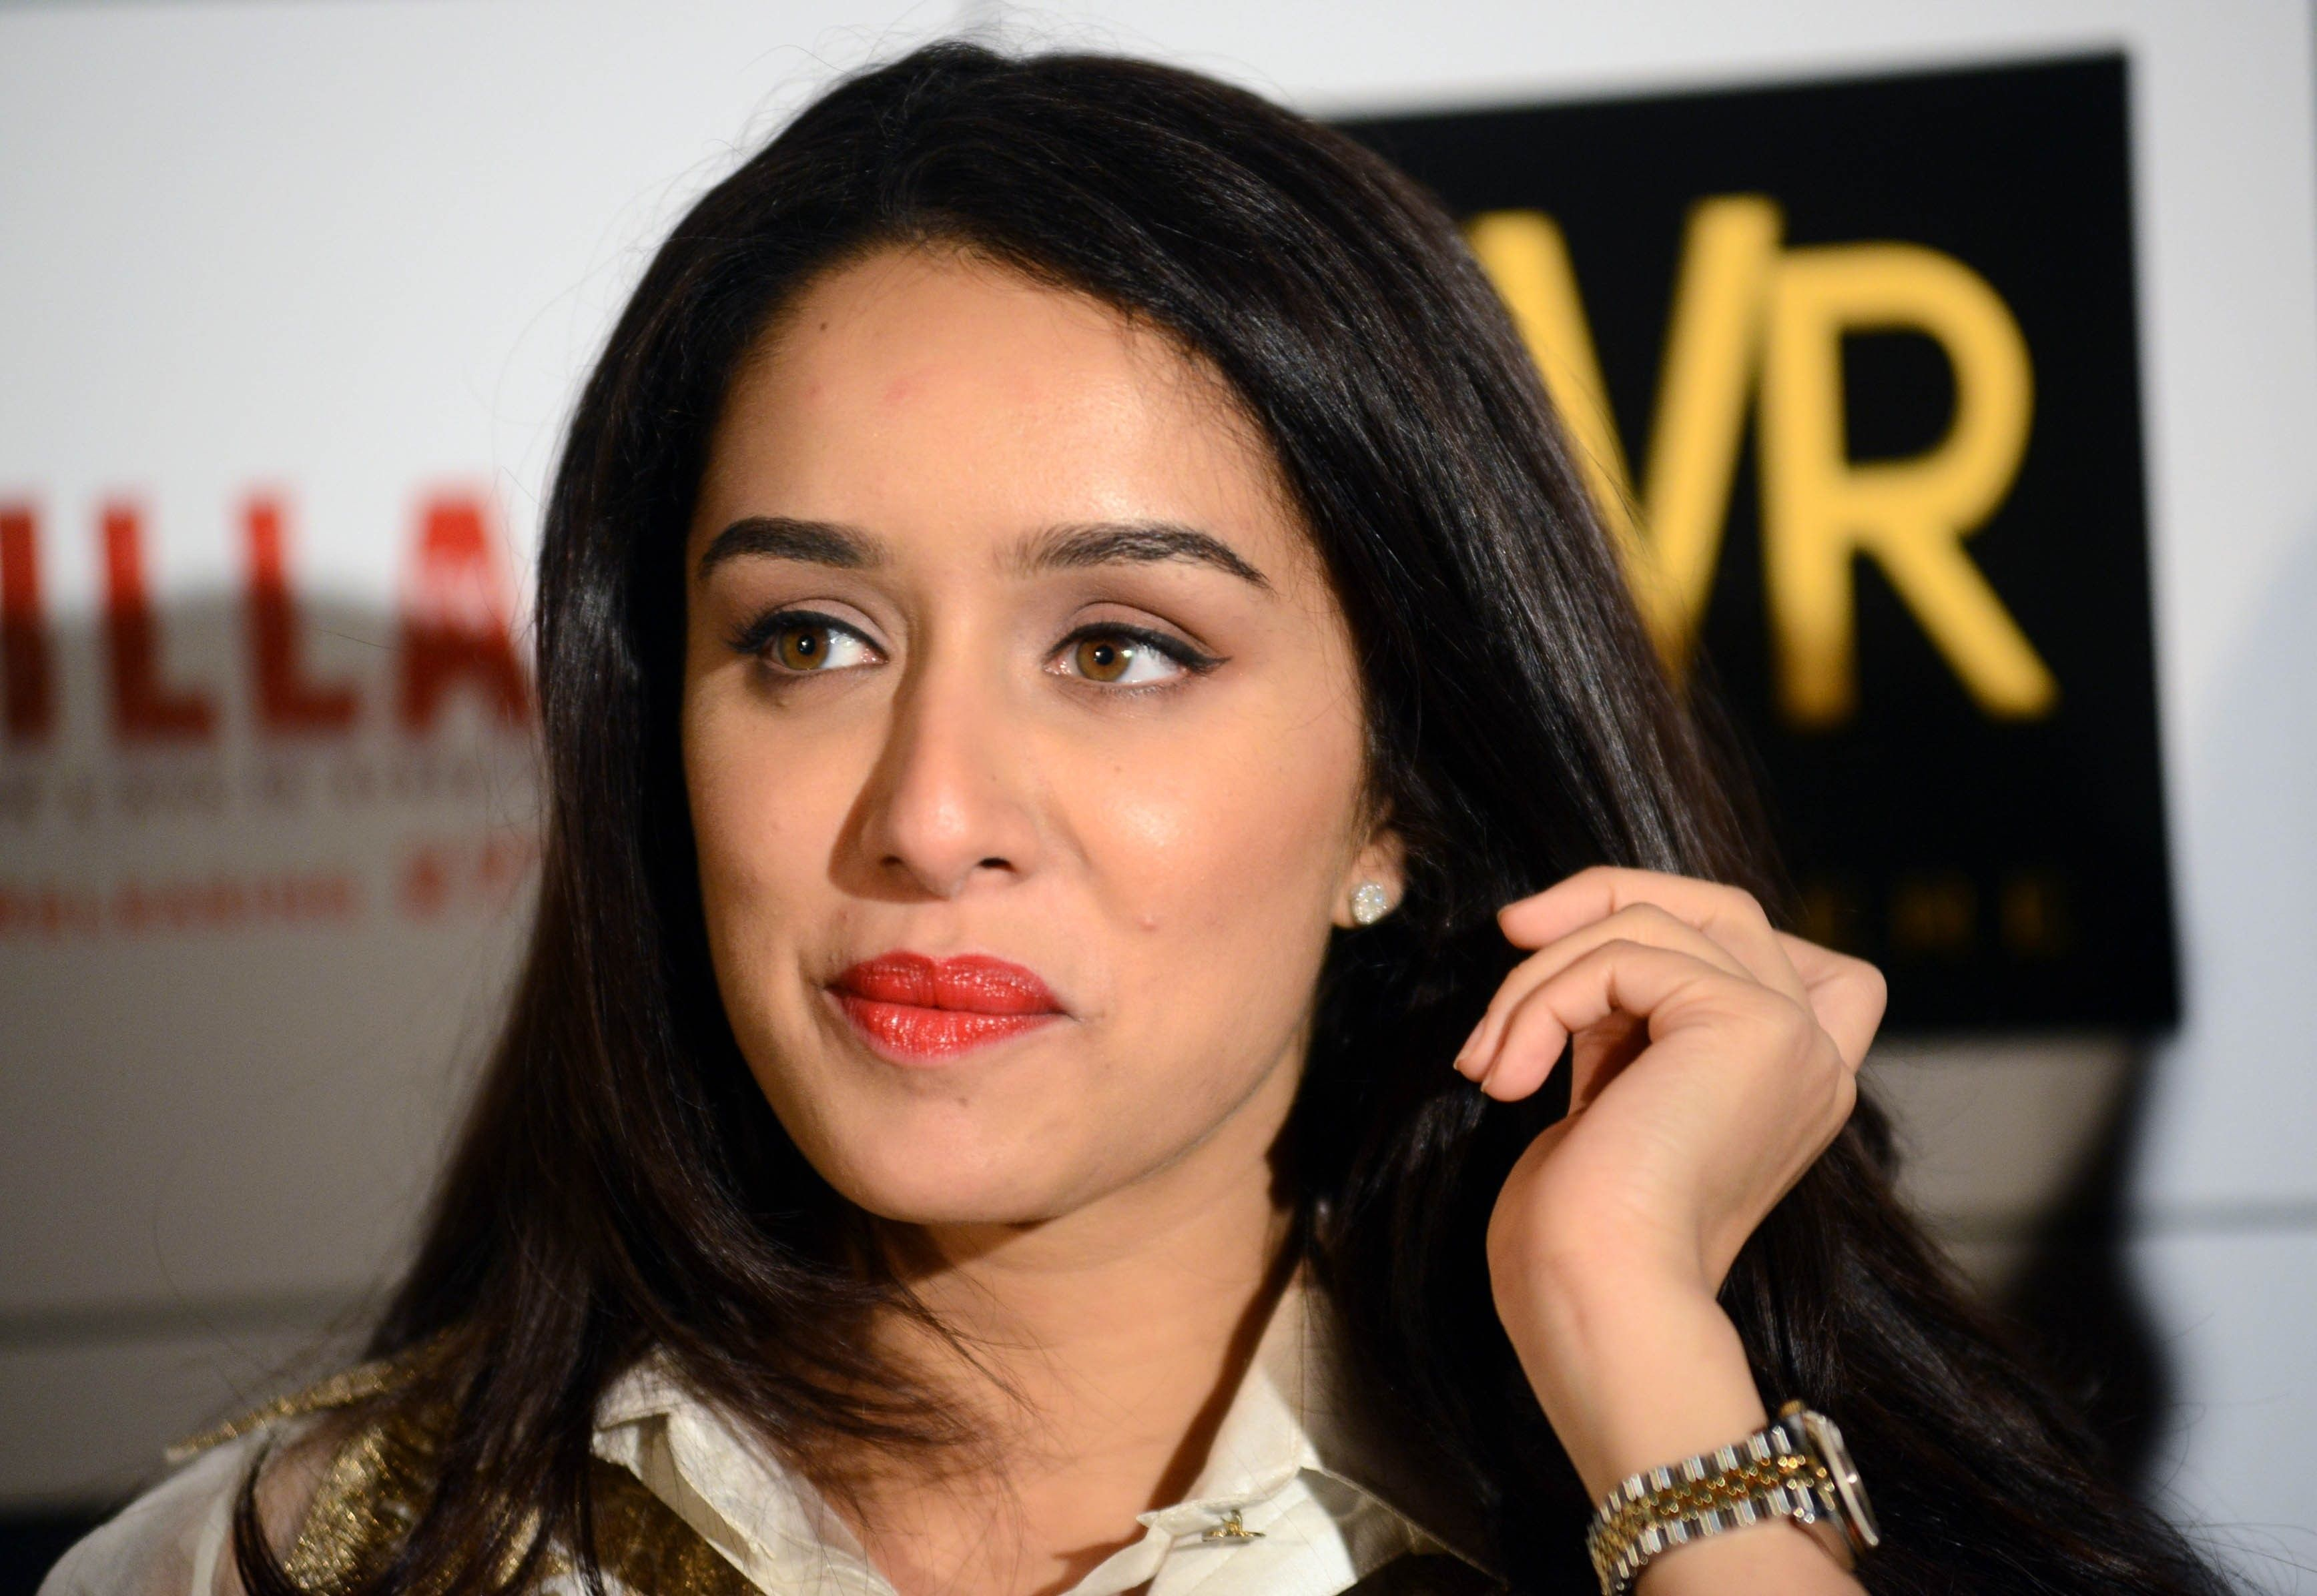 Bollywood Celebrity Shraddha Kapoor In Red Lips Wallpaper